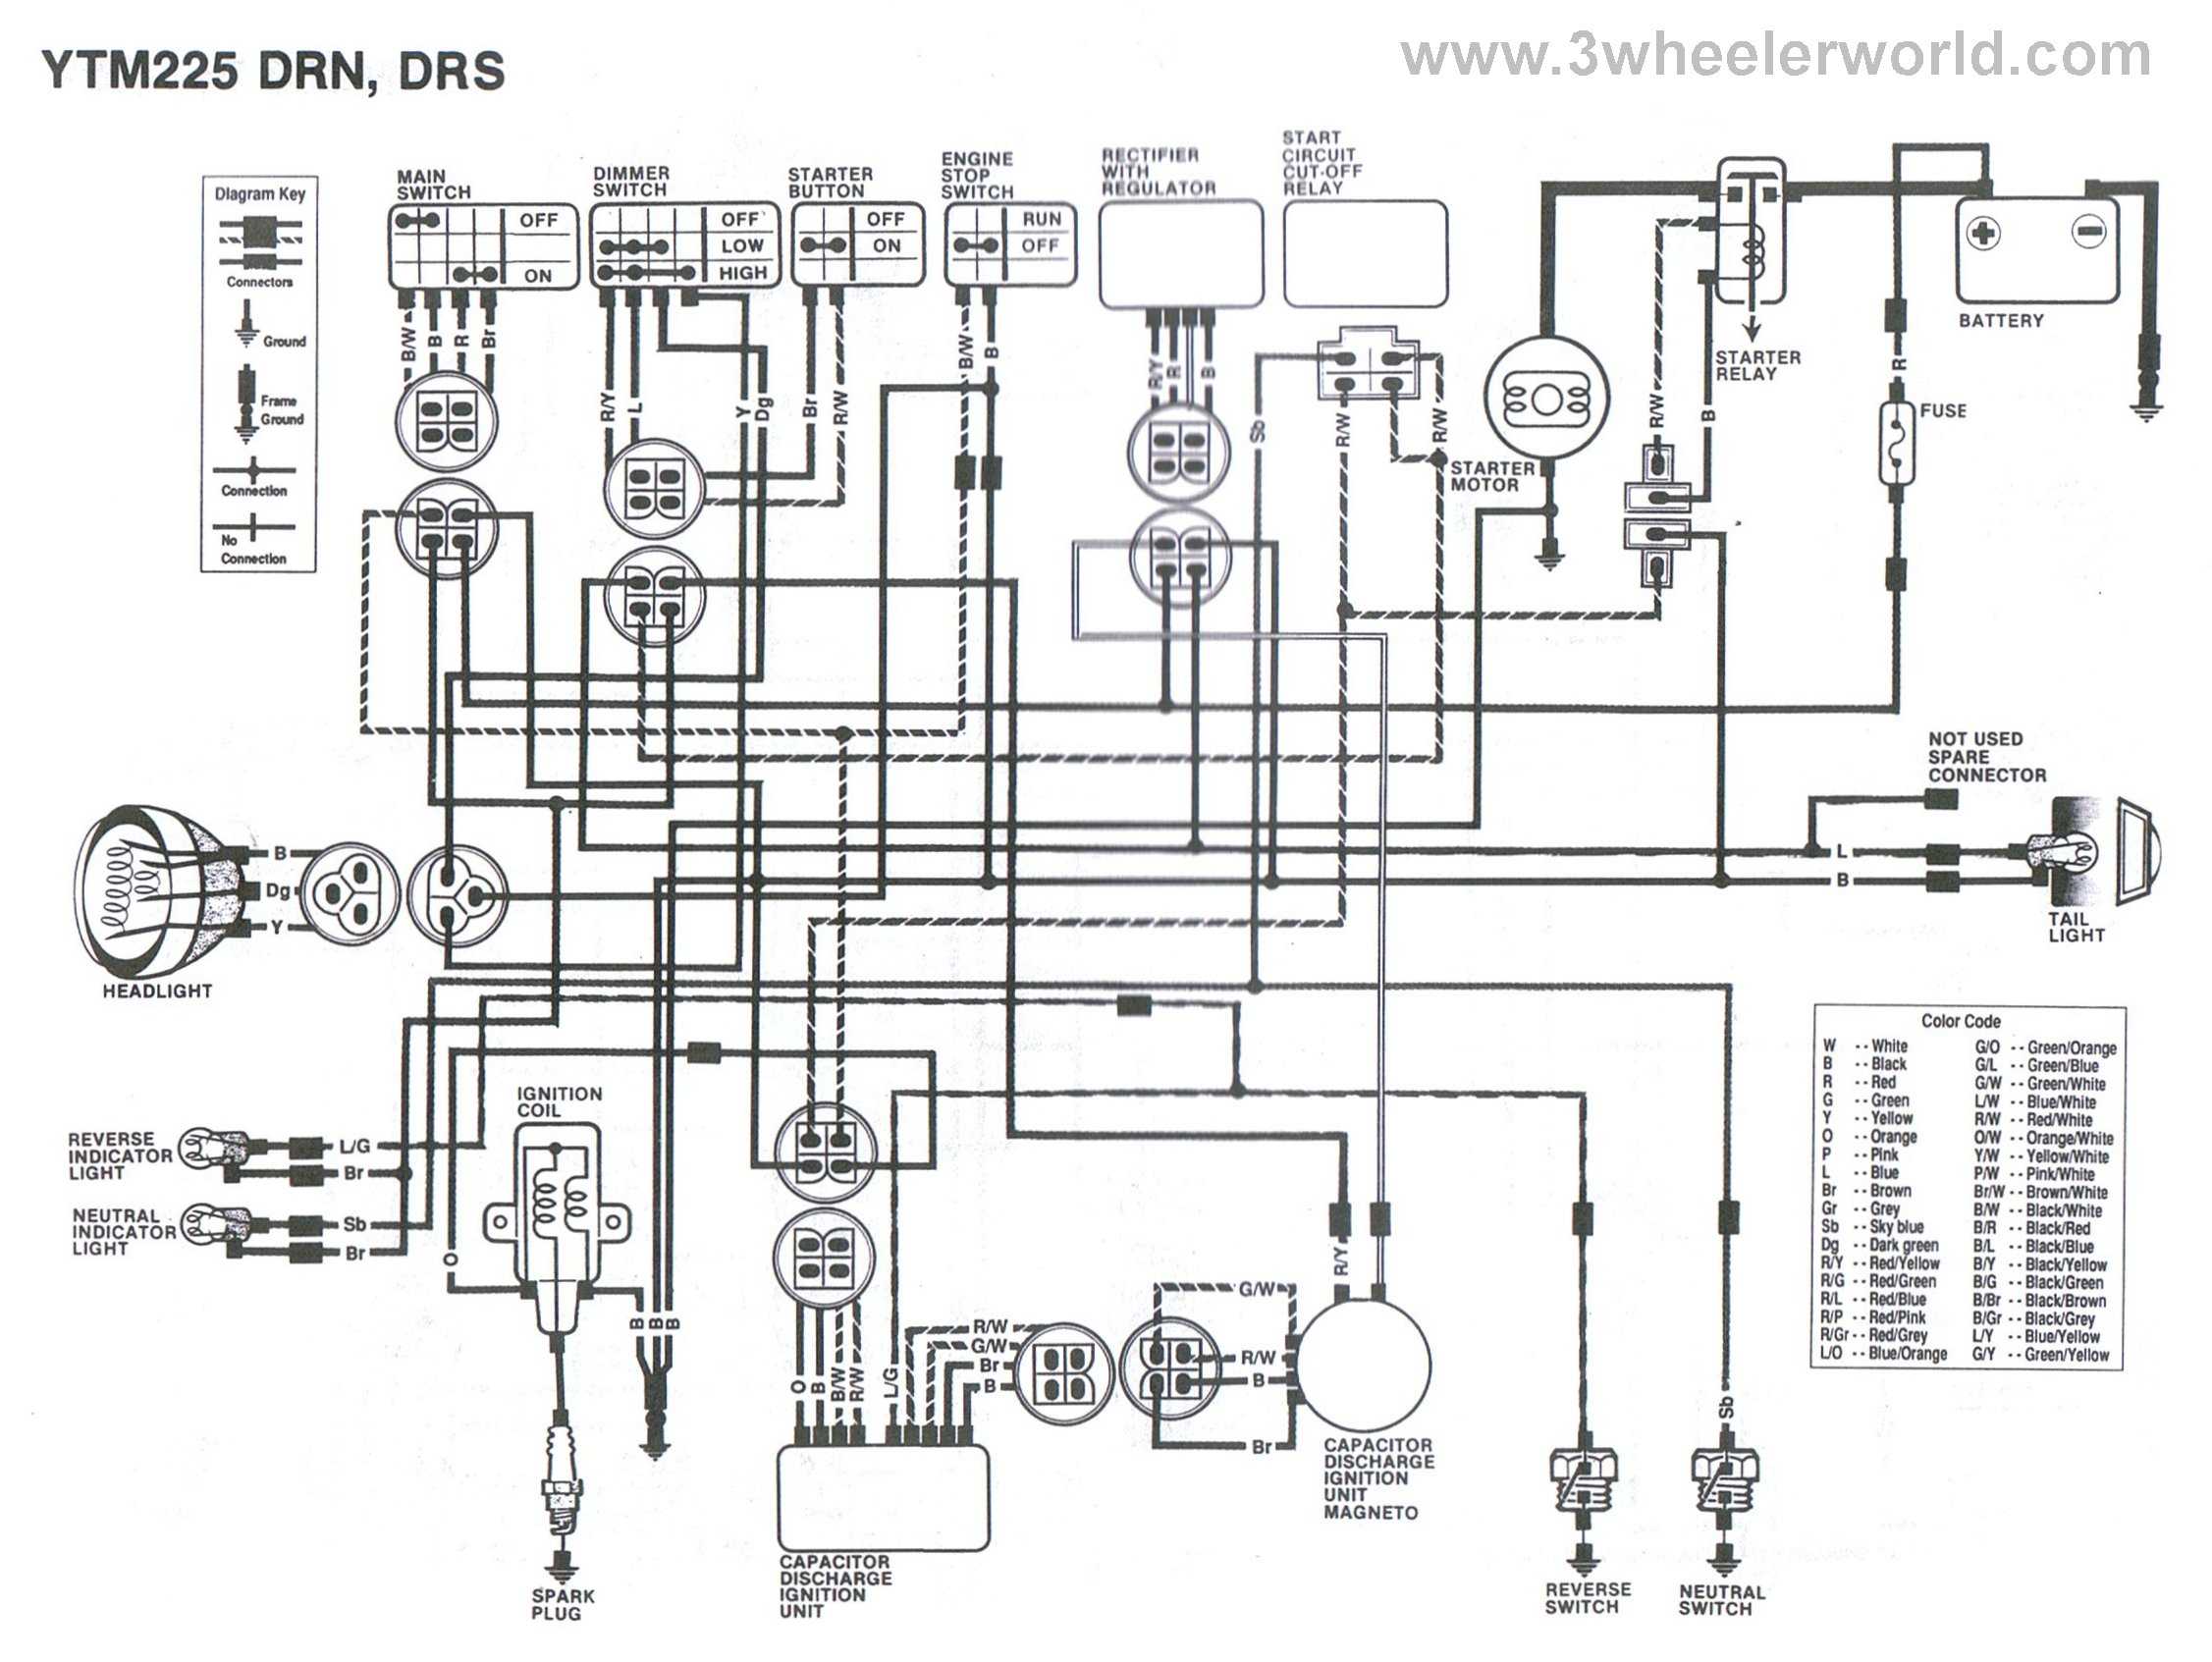 Yamaha 200 Outboard Wiring Diagram Wiring Diagram Schematics Circuit Diagram  T9 Wiring Diagram